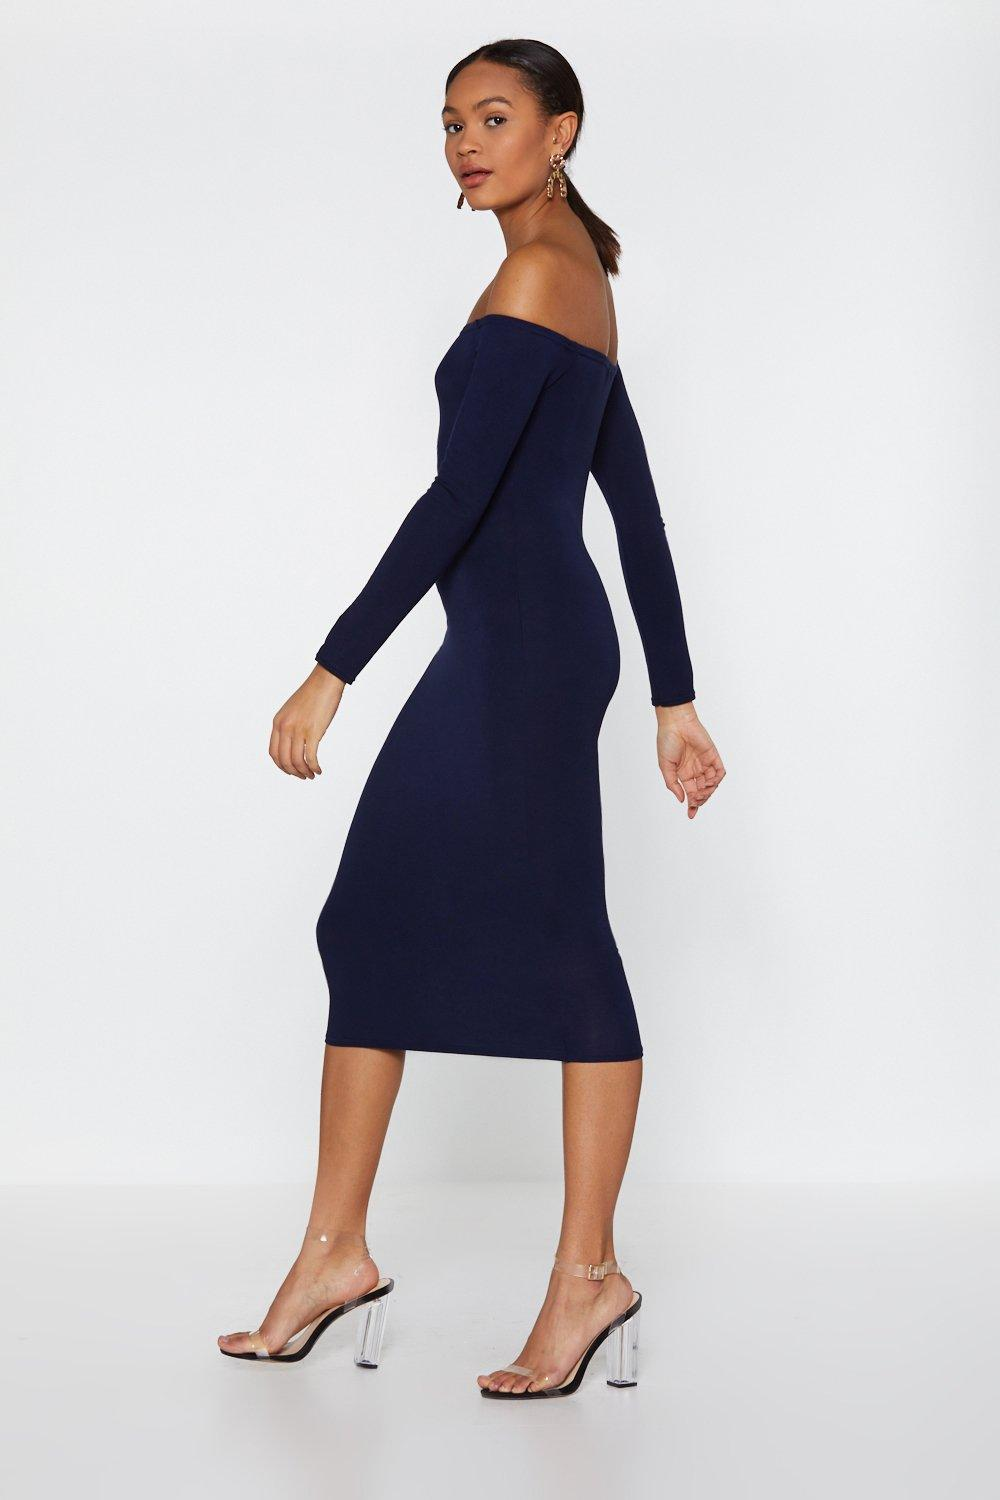 cb5fa2e3c05f In the Stretch Off-the-Shoulder Dress | Shop Clothes at Nasty Gal!